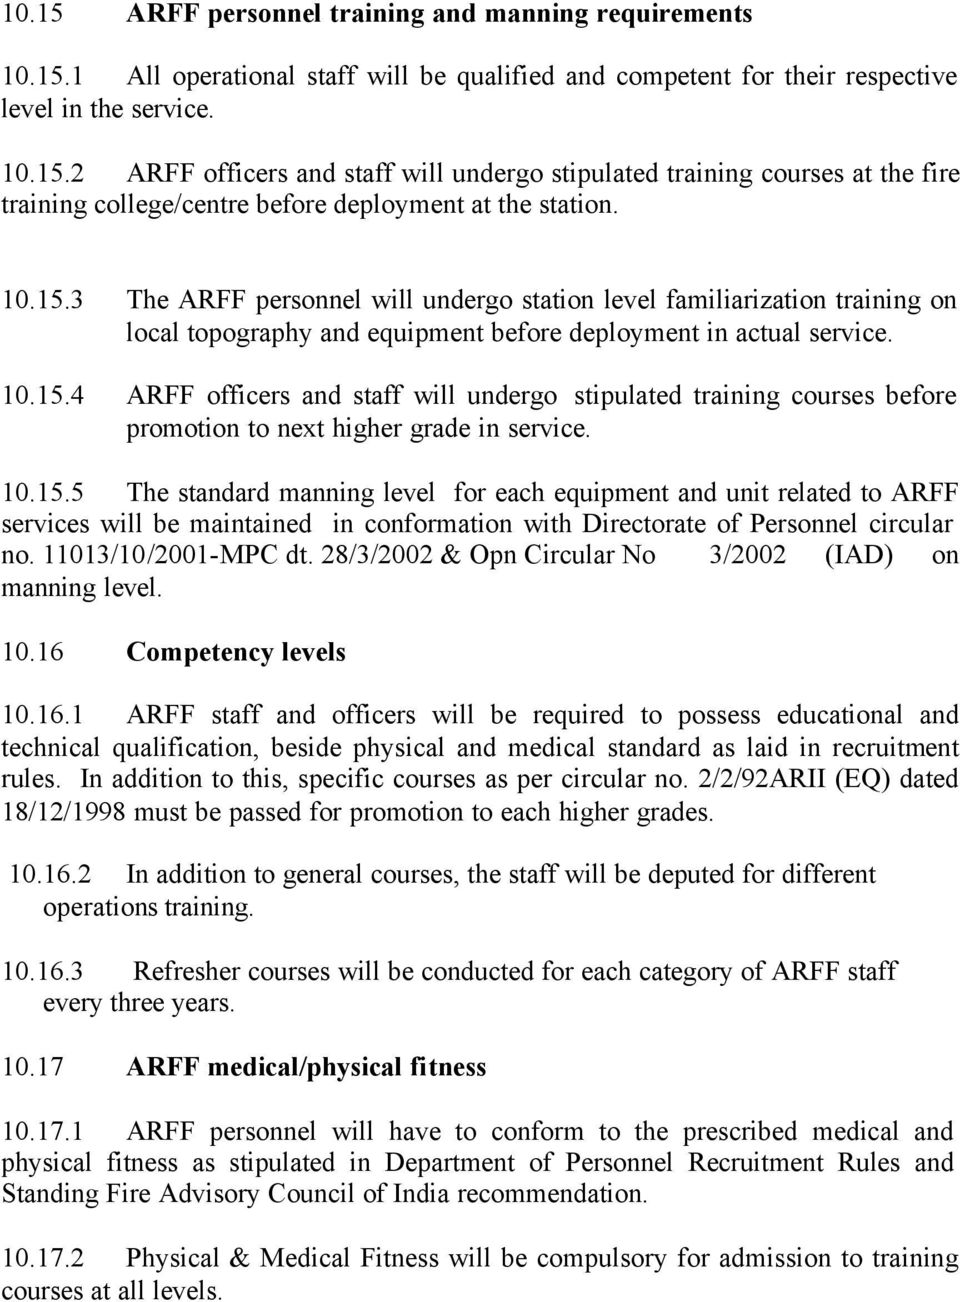 10.15.5 The standard manning level for each equipment and unit related to ARFF services will be maintained in conformation with Directorate of Personnel circular no. 11013/10/2001-MPC dt.